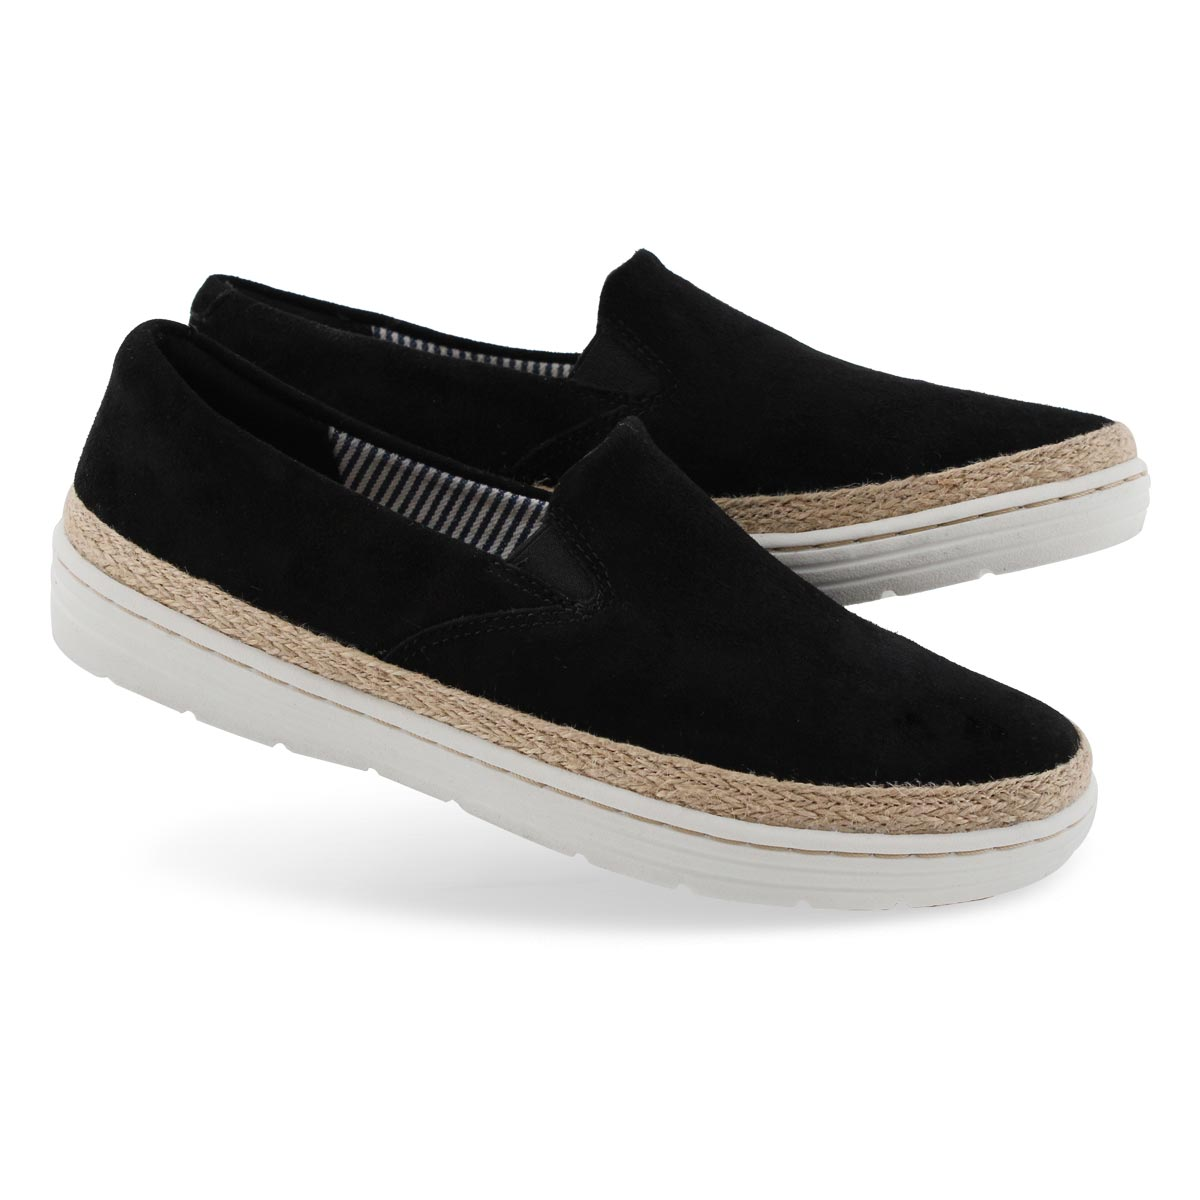 Lds Marie Pearl black casual shoe